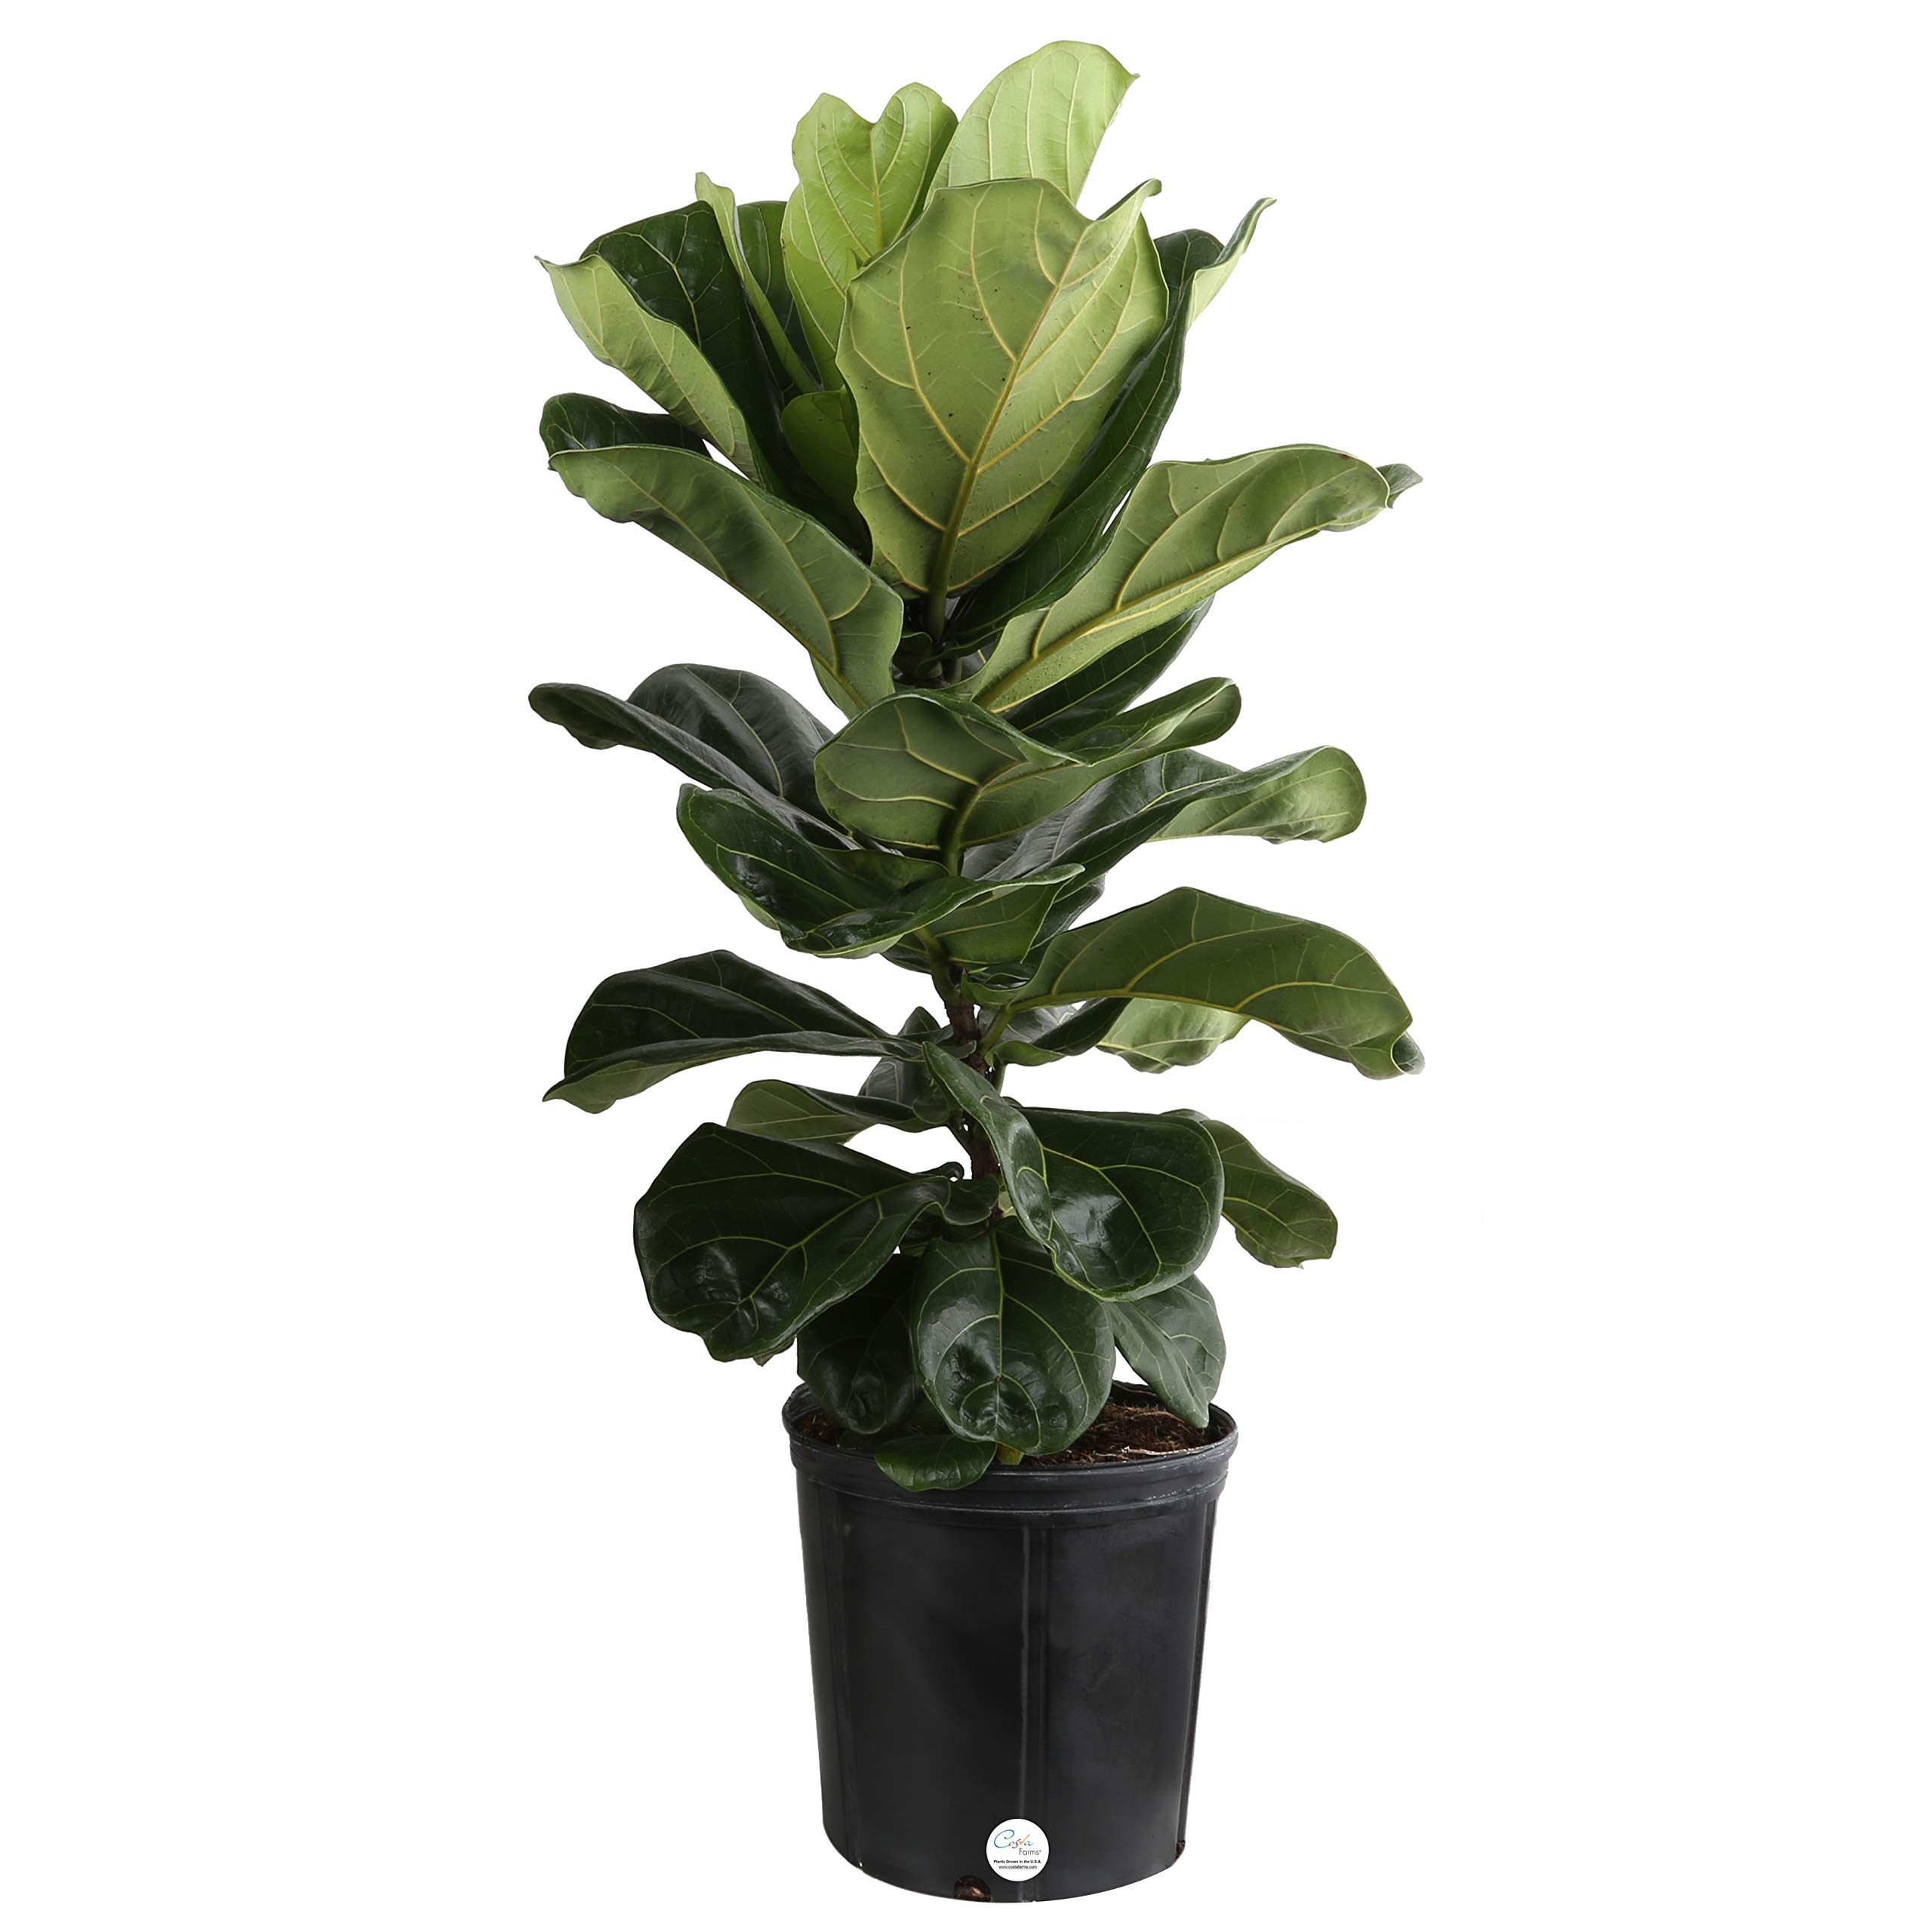 Costa Farms Live Ficus Lyrata, Fiddle-Leaf Fig, Indoor Tree, 3-Feet Tall, Ships in Grower Pot, Fresh From Our Farm by Costa Farms